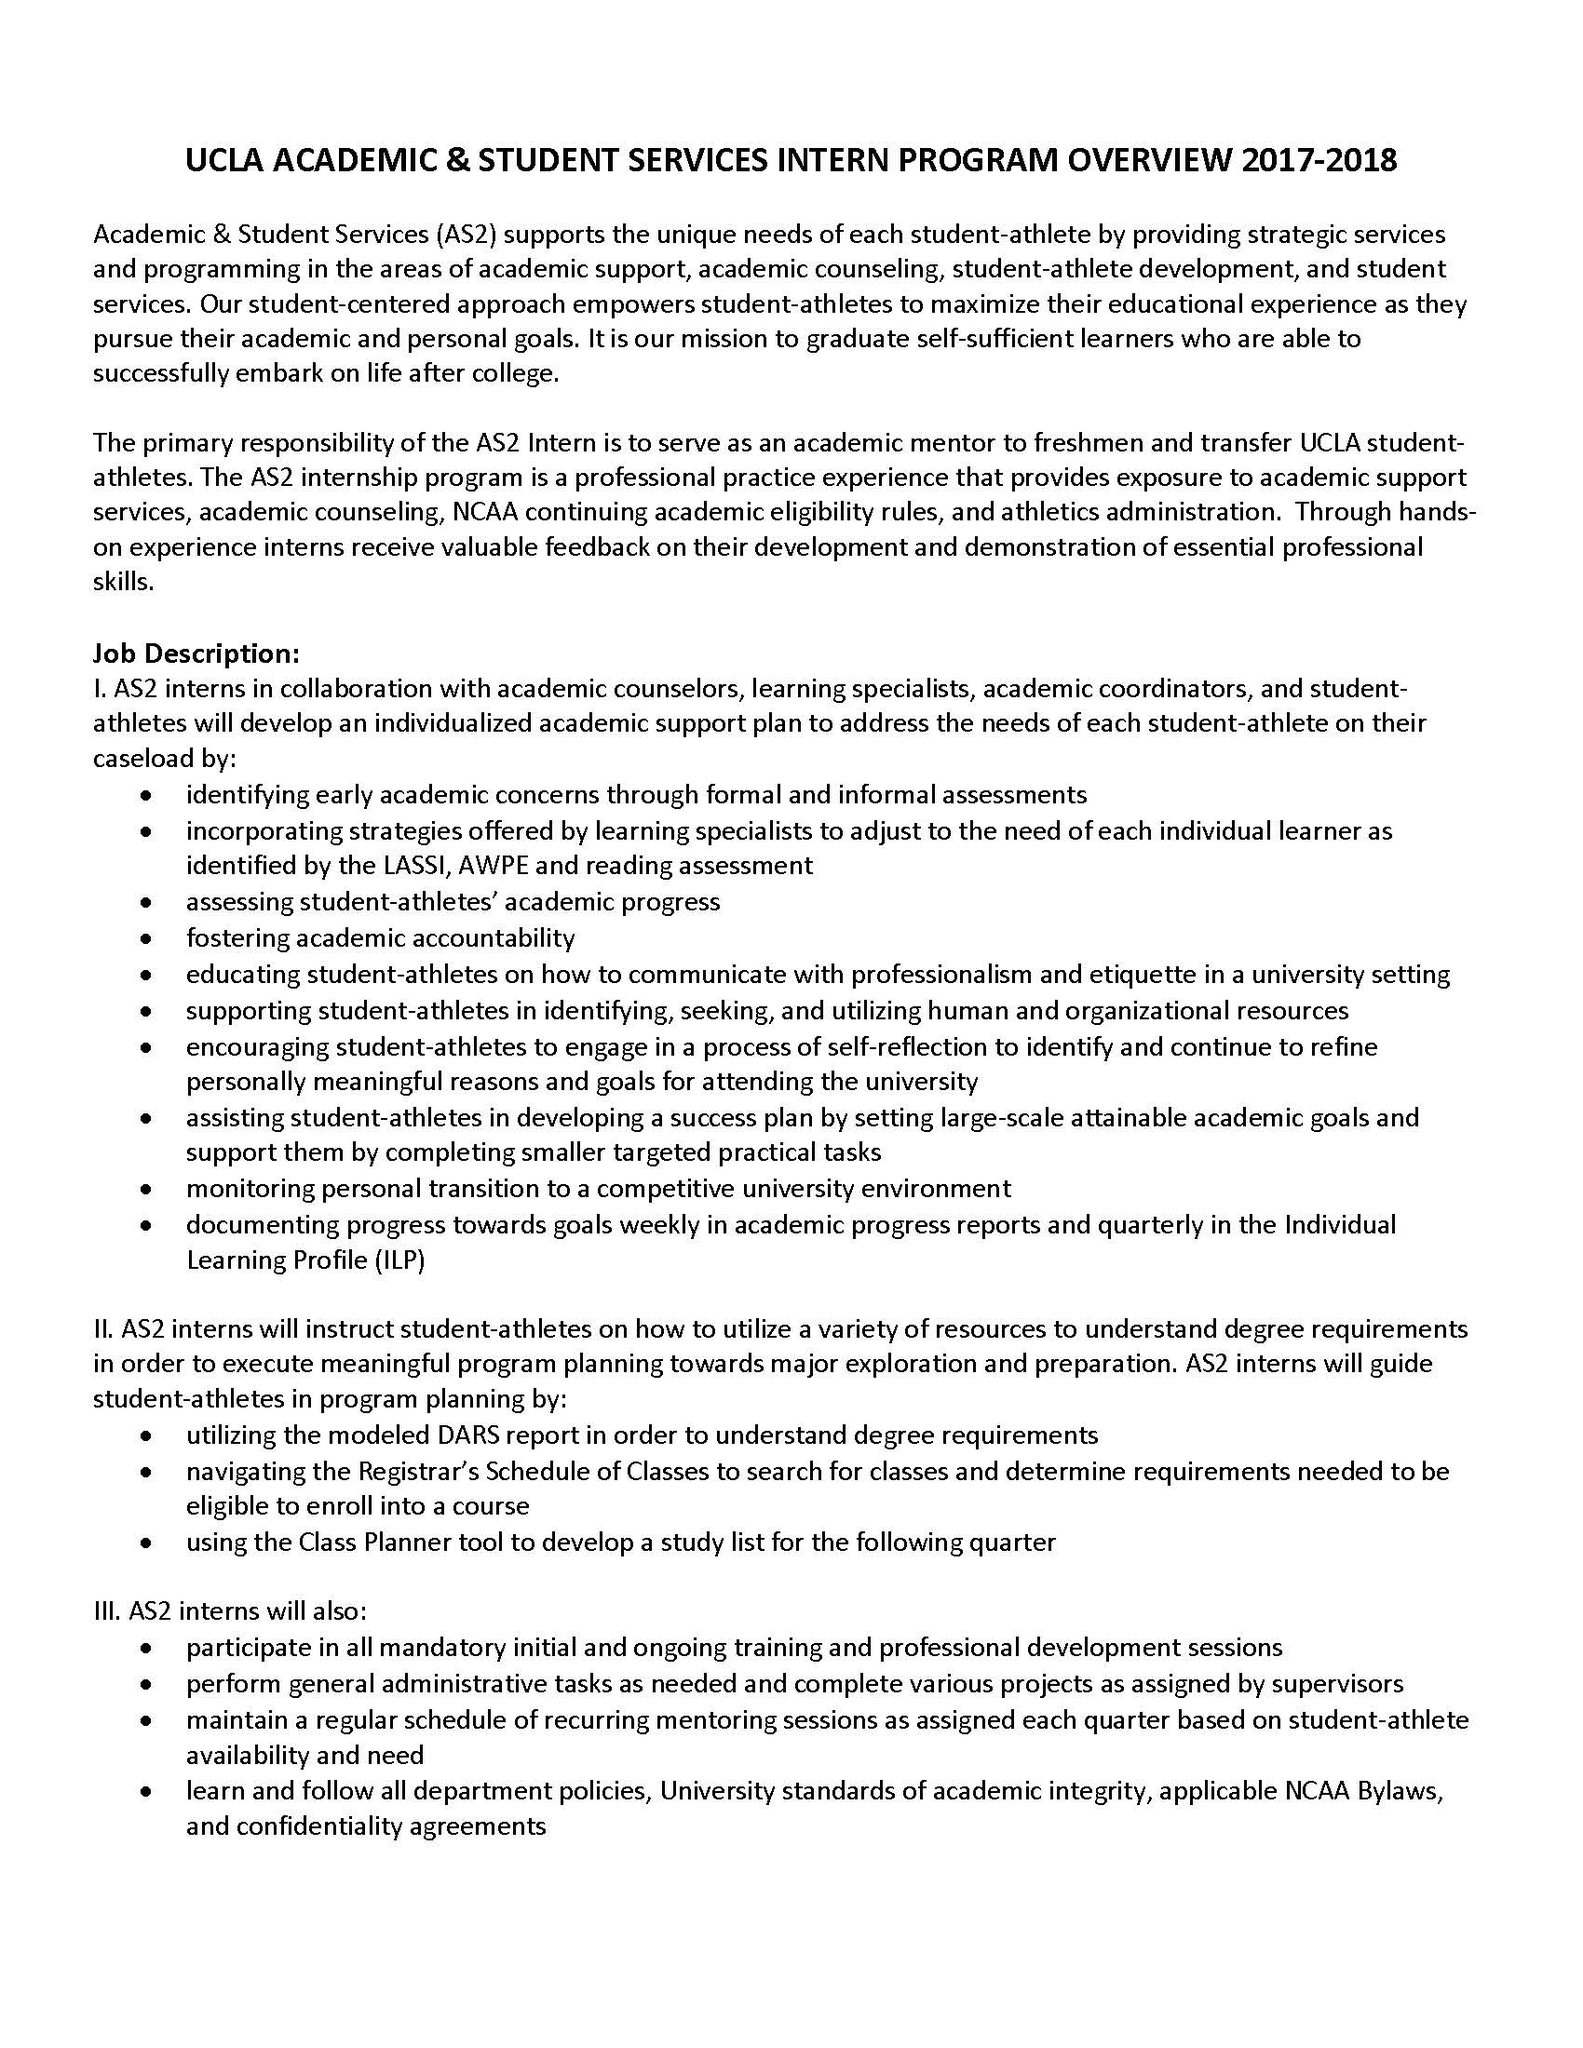 Proposal Essay Example Essay Types Examples Health The Kite Runner Essay Thesis also How To Write A Research Essay Thesis Pro Advertising Essay Gmo Healthcare Essay Topics